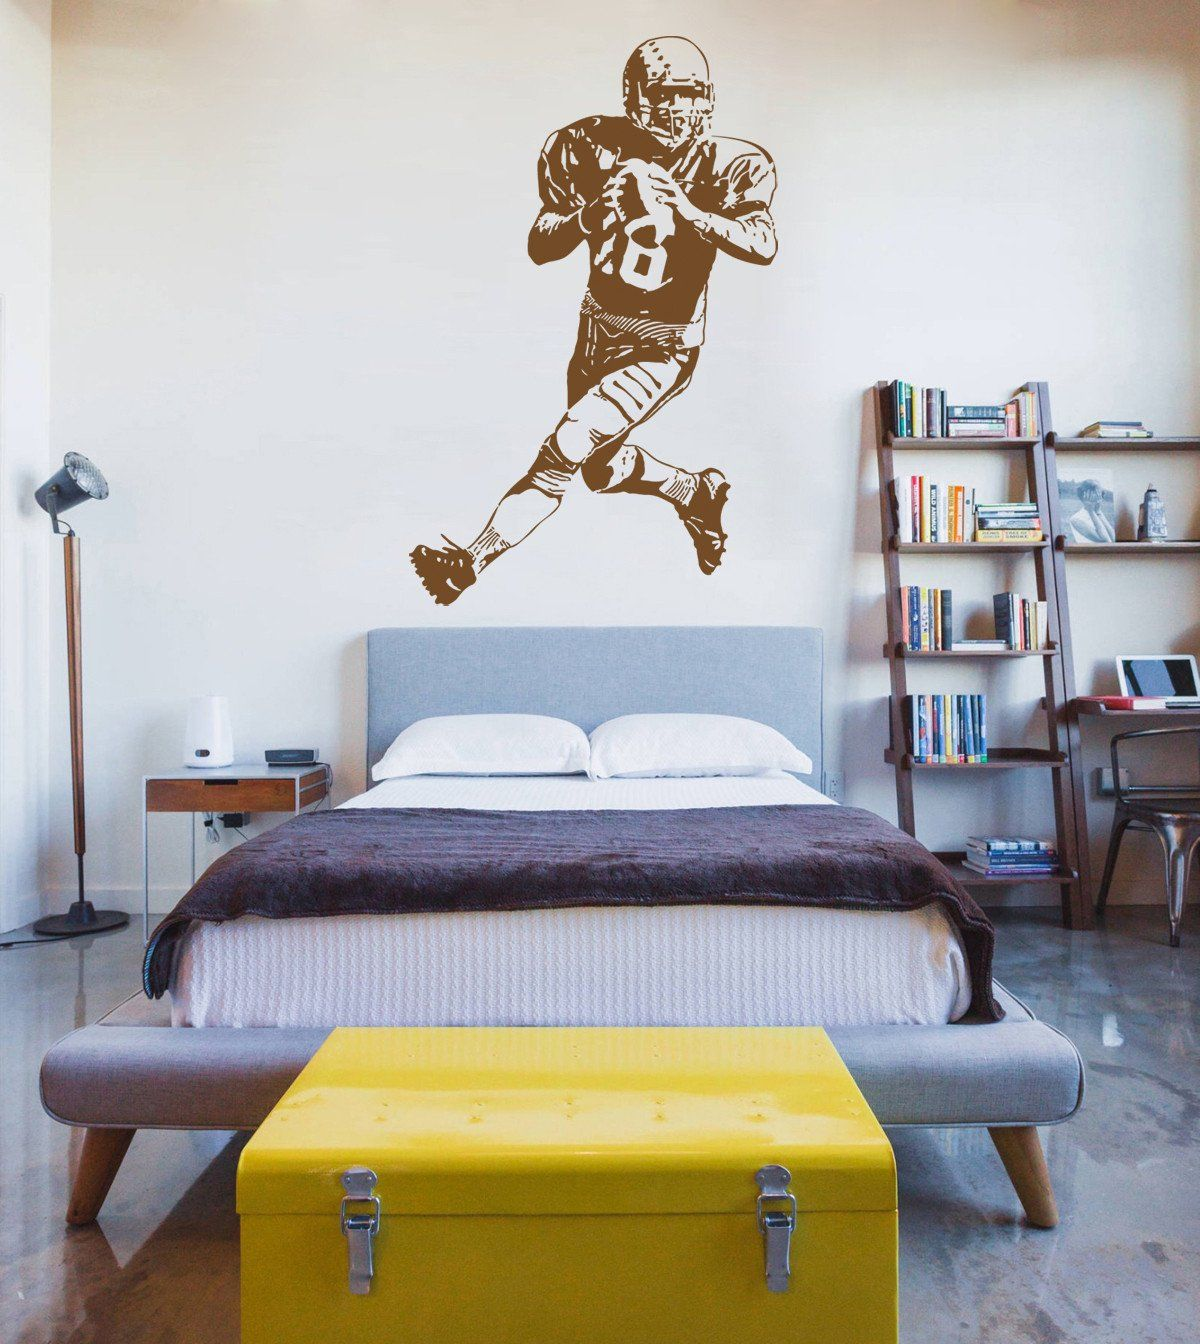 Sports decals sports stickers name decals sports wall sports wall ik wall decal sticker rugby football sports living childrens sporting wall decals amipublicfo Images